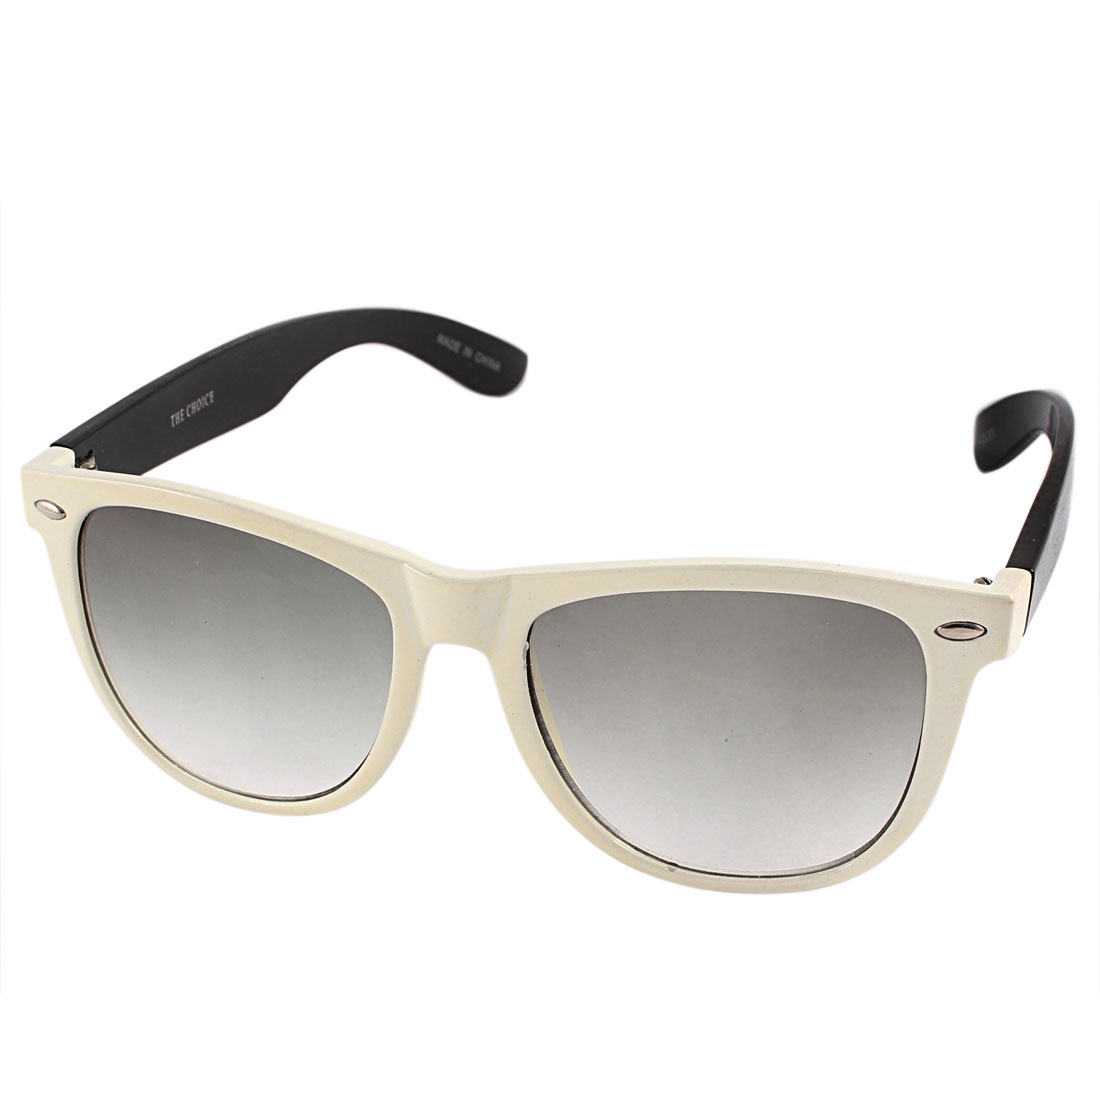 White Black Plastic Oval Full Frame Single Bridge Sunglasses for Unisex